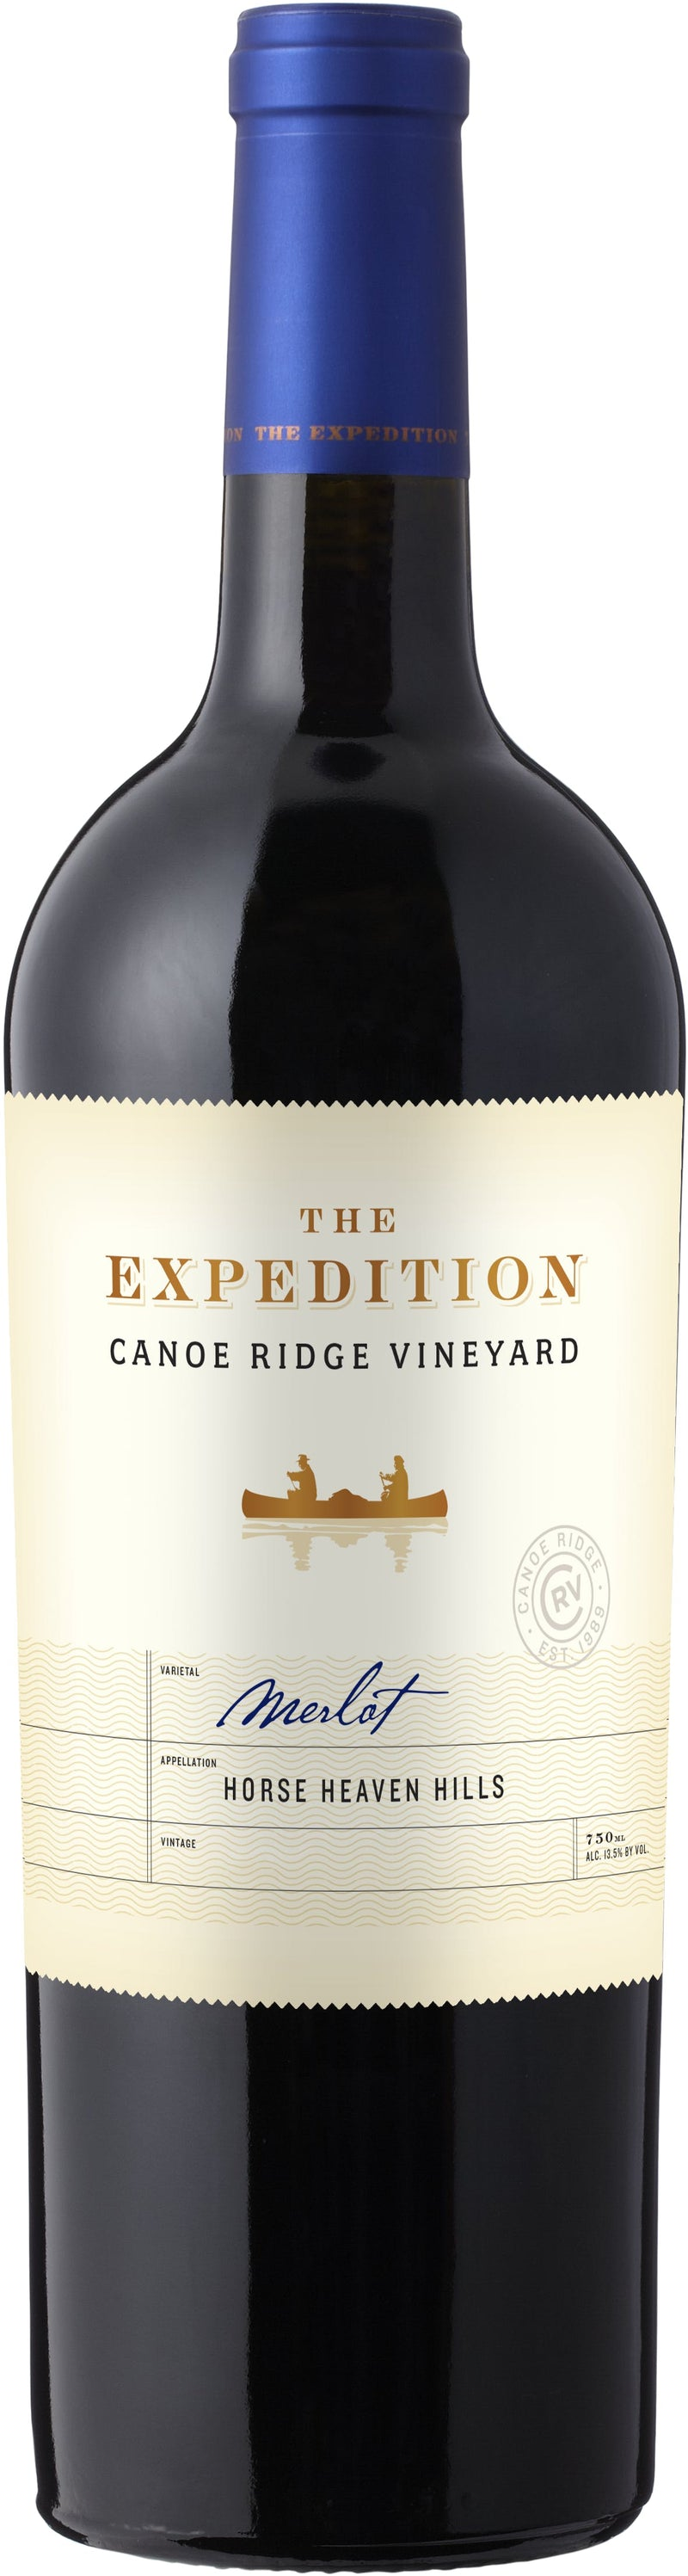 Canoe Ridge Horse Heaven Hills Merlot The Expedition 2017